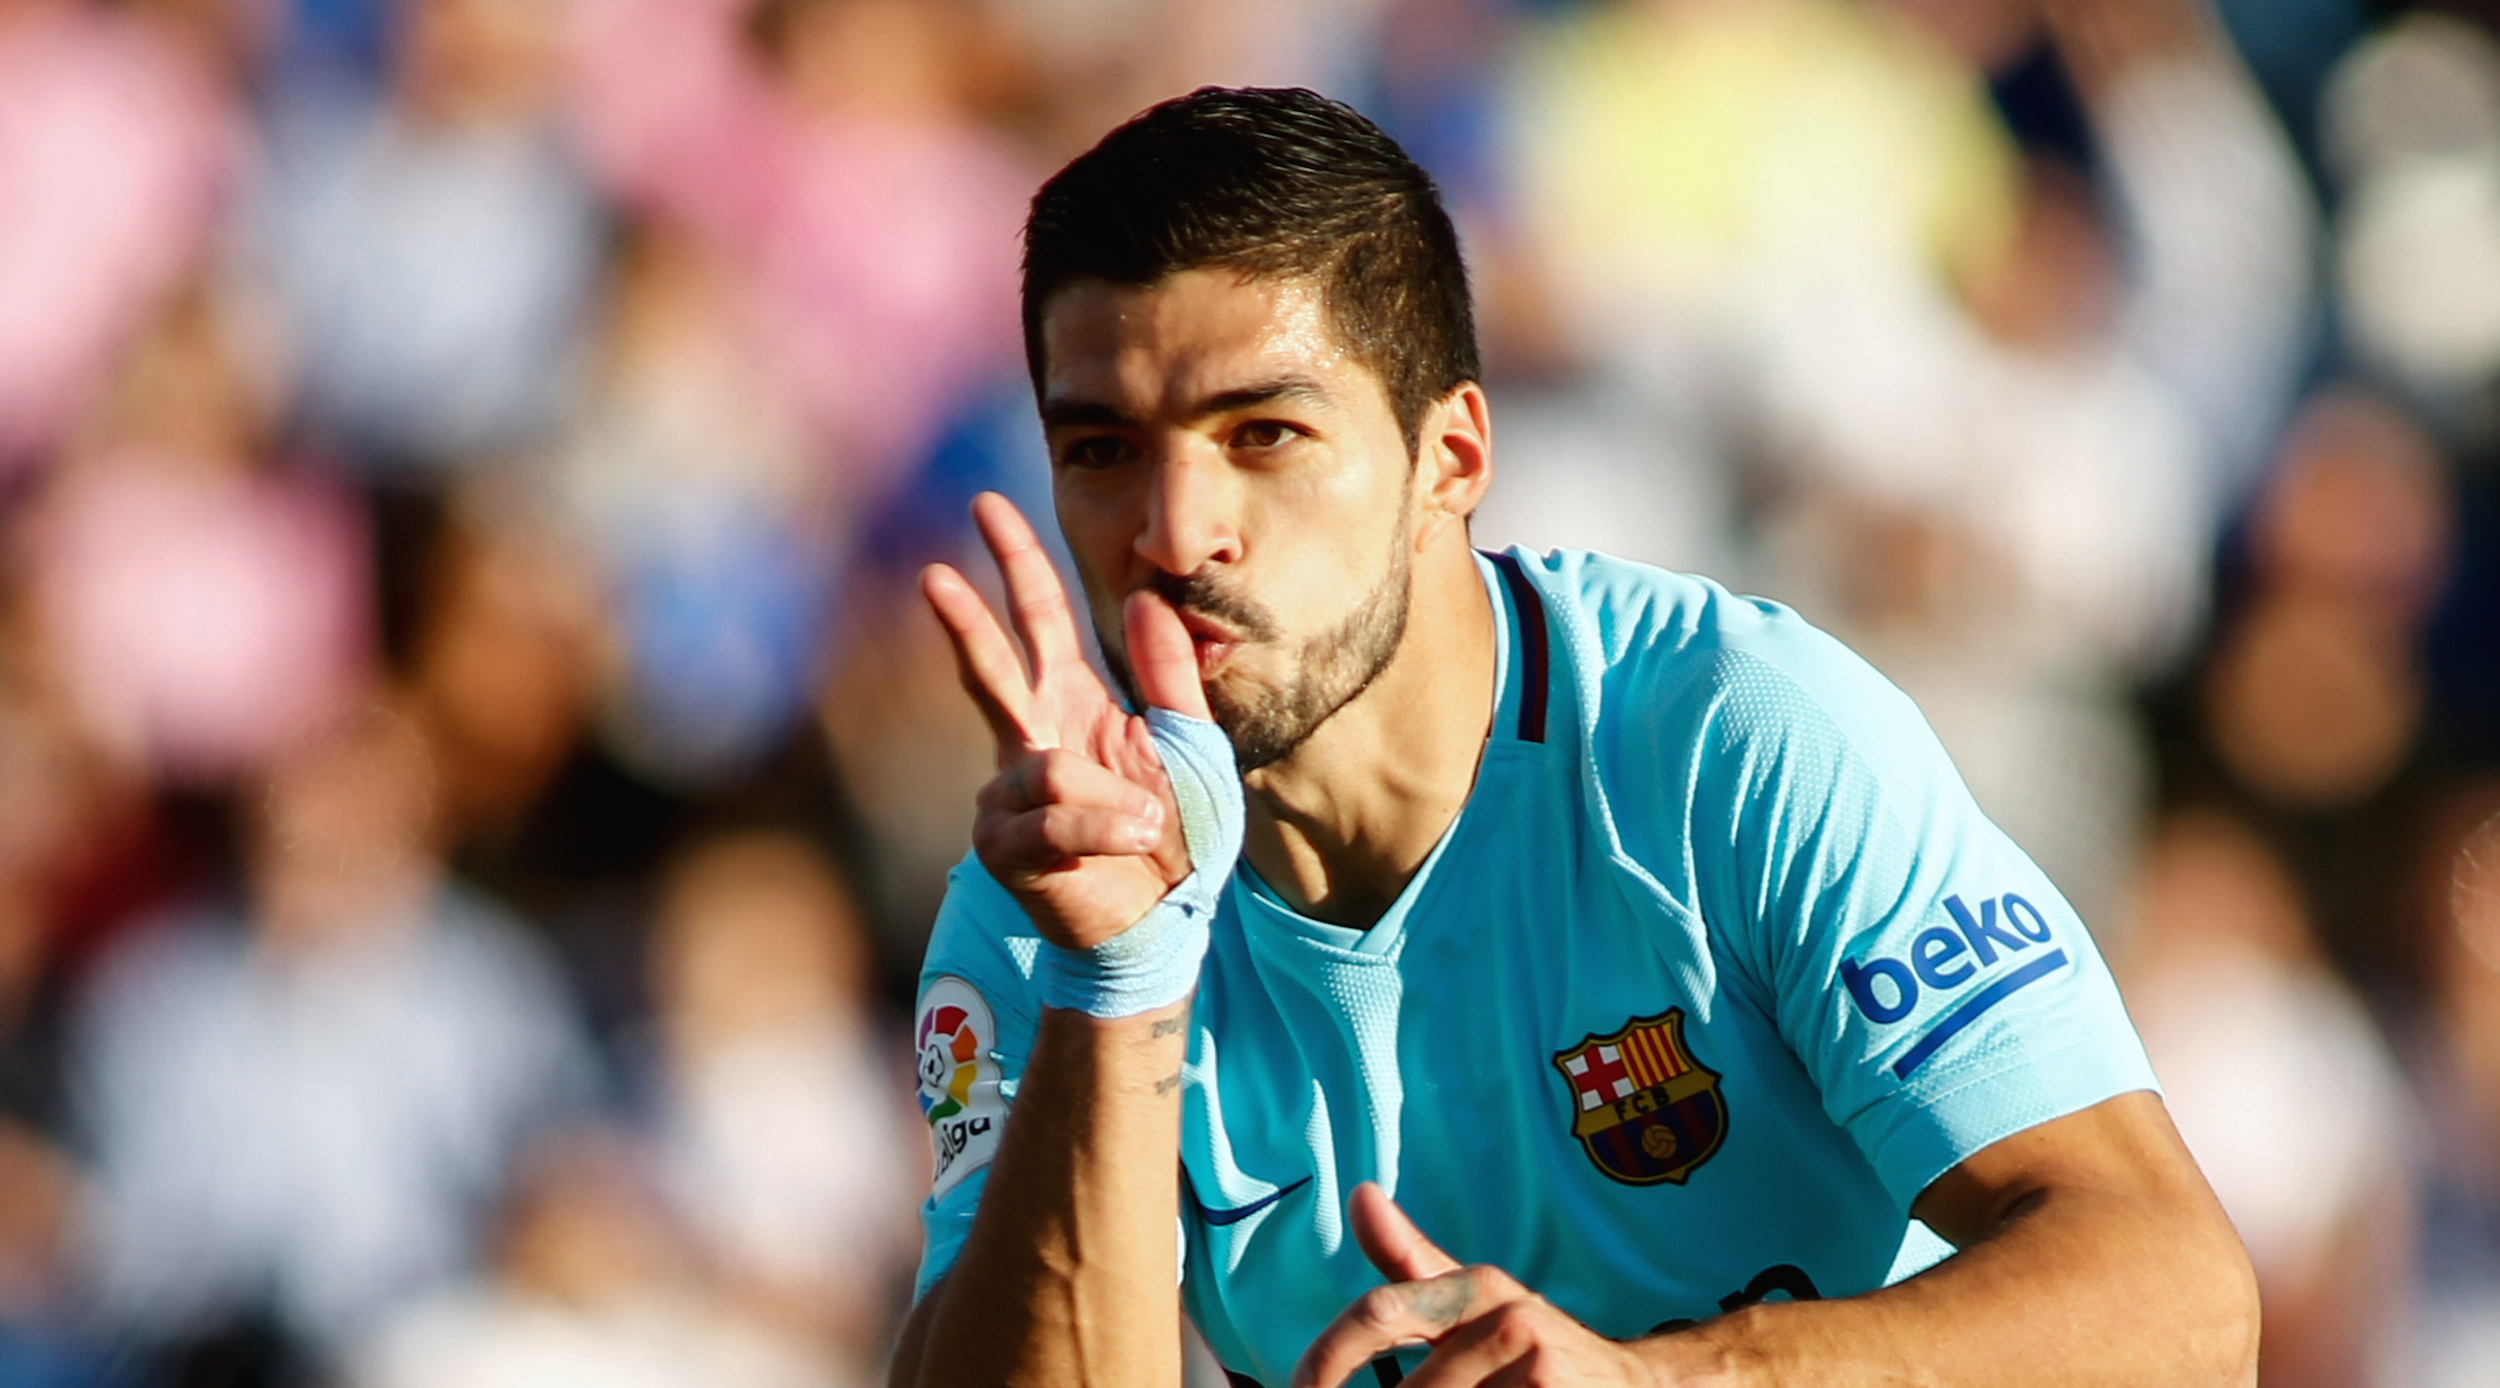 Barcelona's Uruguayan forward Luis Suarez celebrates after scoring a goal during the Spanish league football match Leganes vs Barcelona at the Butarque stadium in Leganes on November 18, 2017. / AFP PHOTO / OSCAR DEL POZO (Photo credit should read OSCAR DEL POZO/AFP/Getty Images)